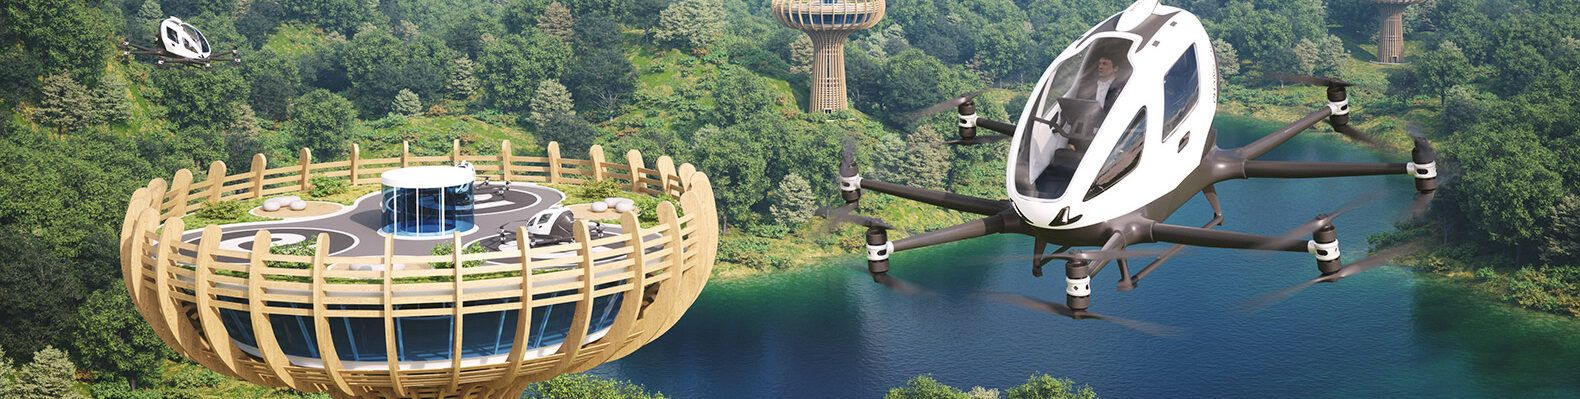 autonomous planes flying around wood landing towers